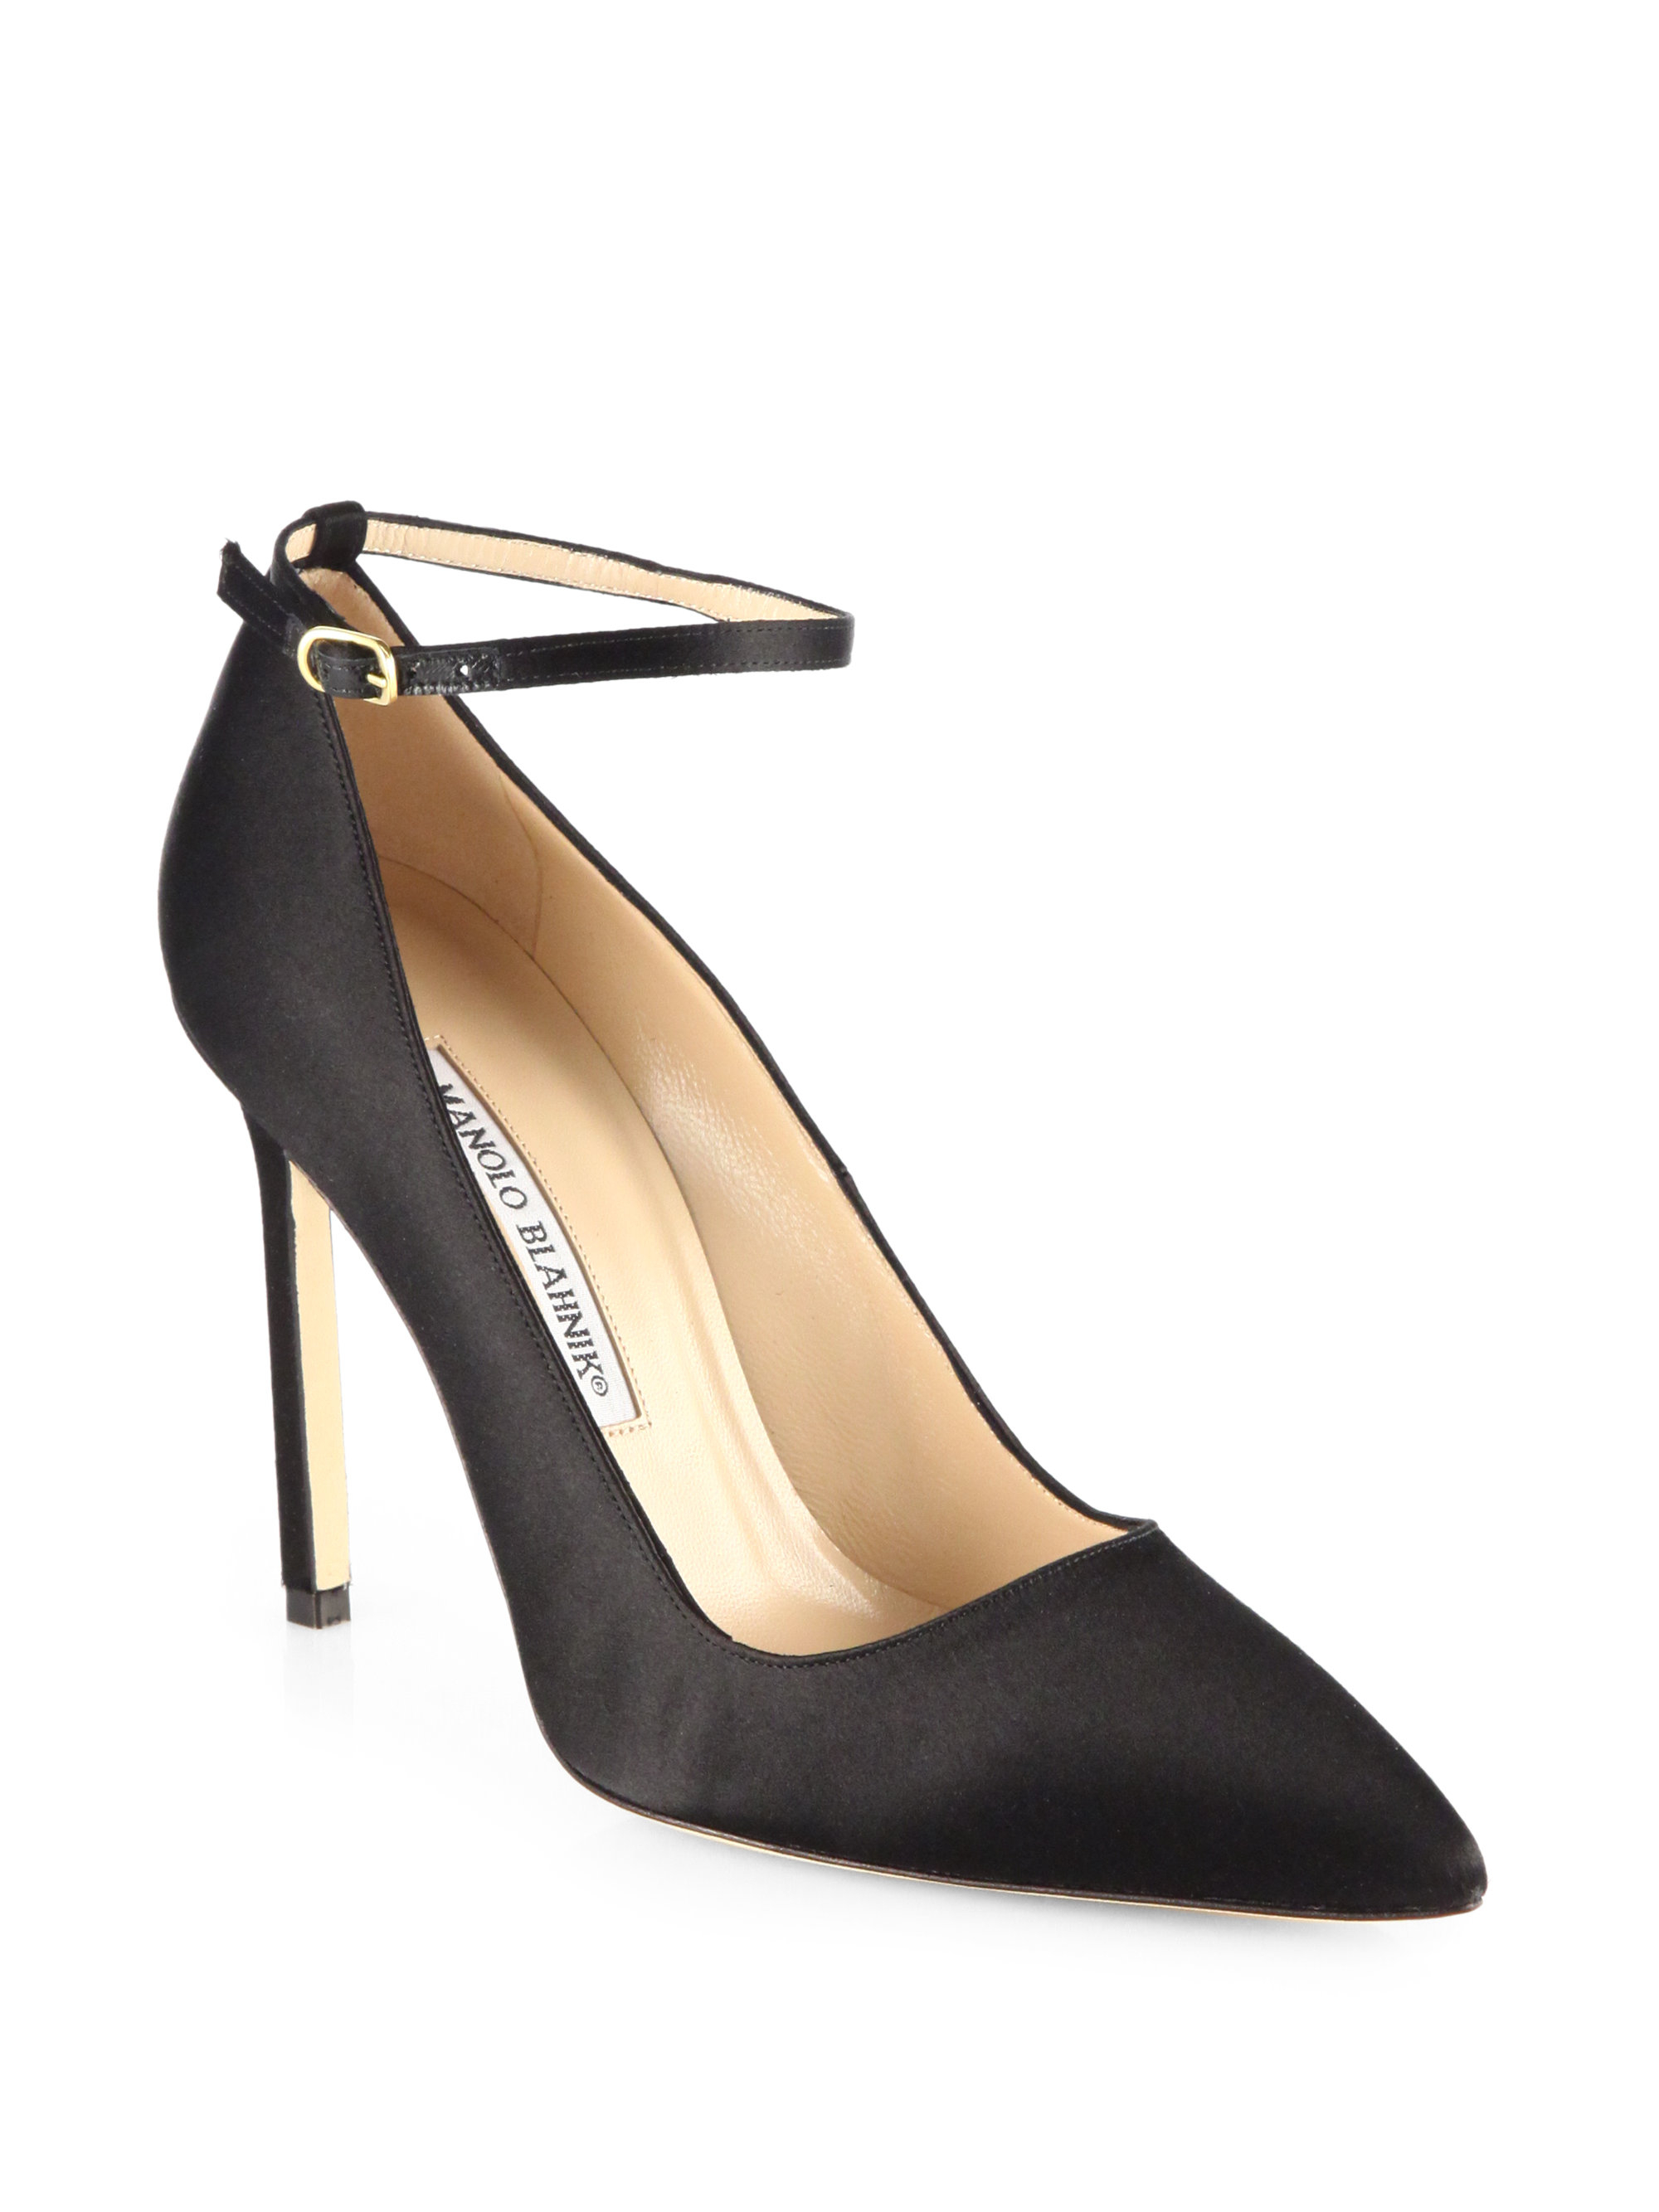 best sale sale online Manolo Blahnik Satin Ankle-Strap Pumps buy cheap popular P6SO04GL